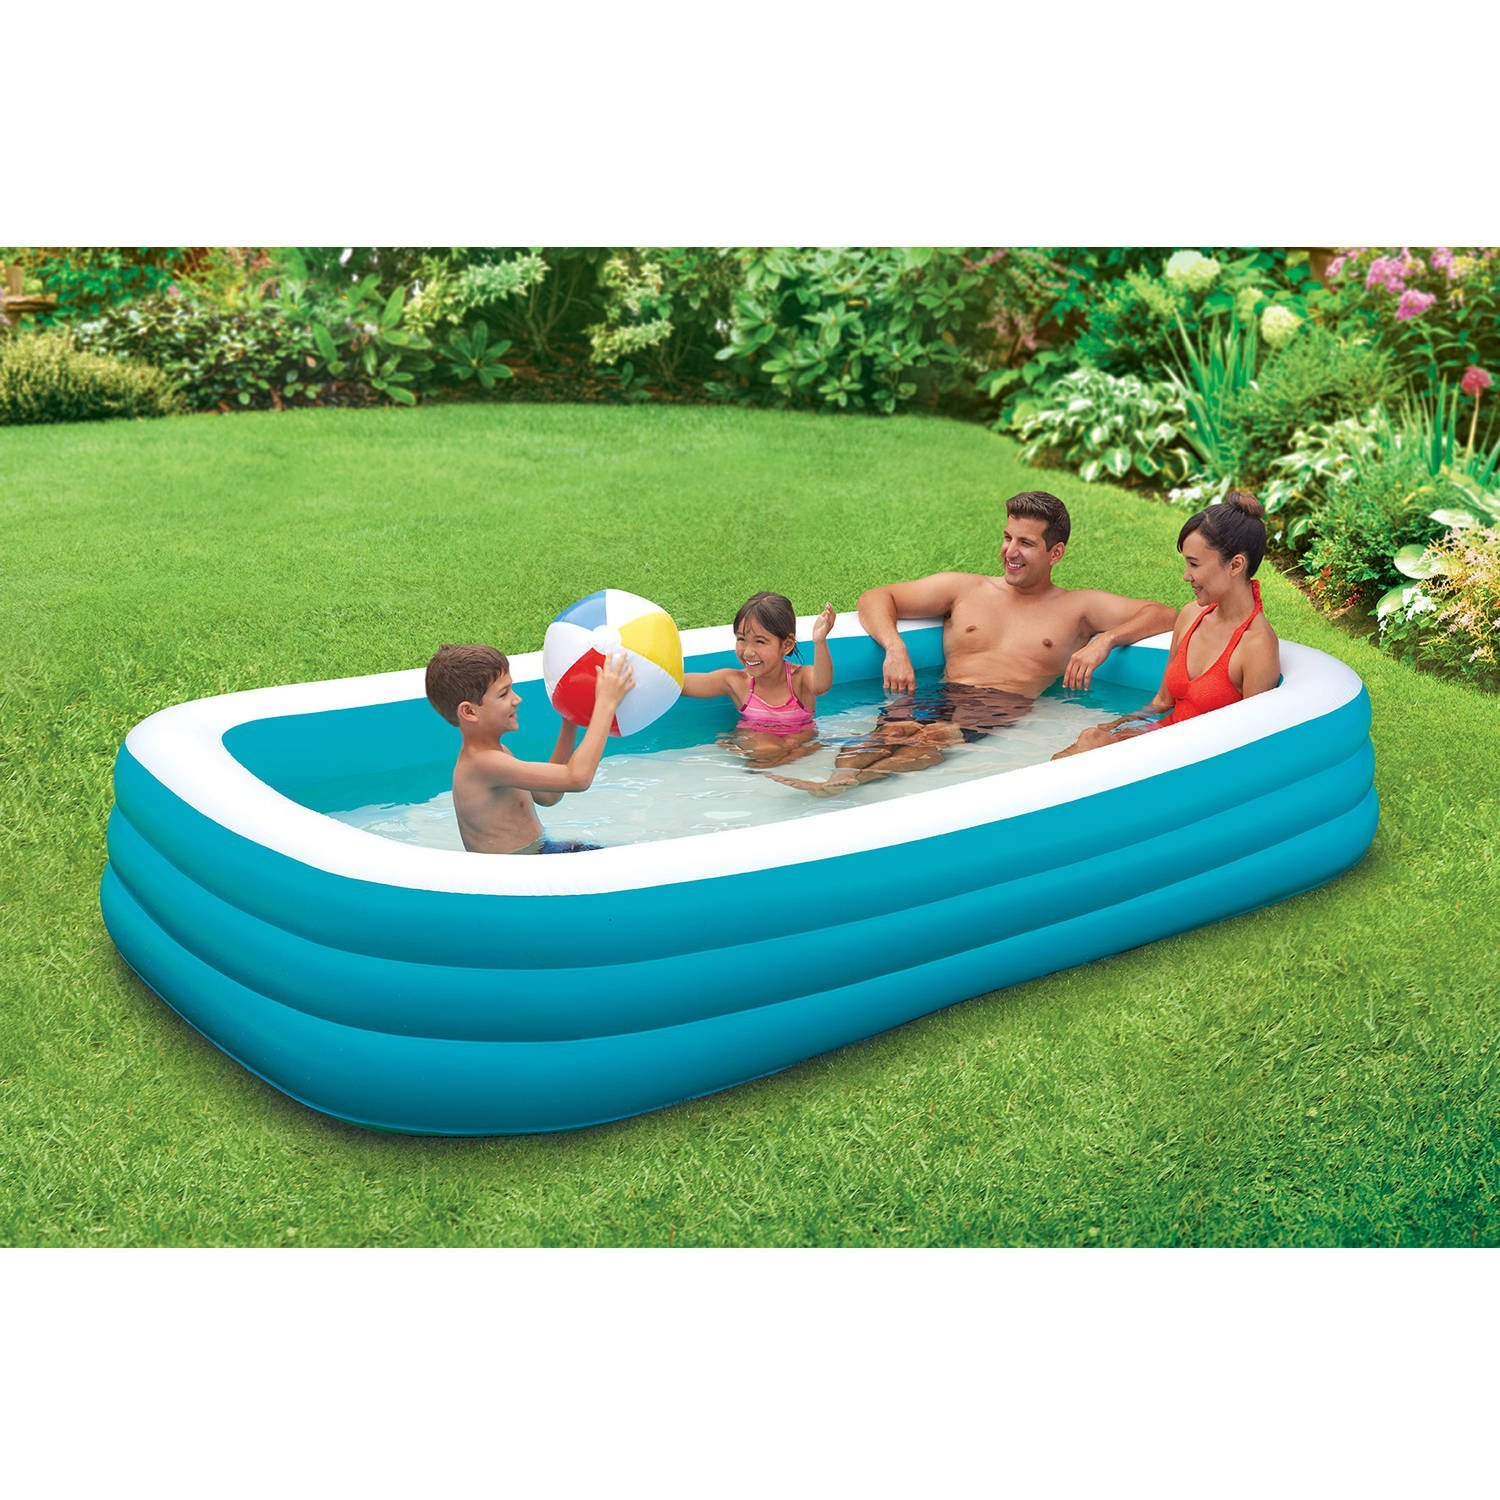 amazoncom play day 120 deluxe family pool garden outdoor